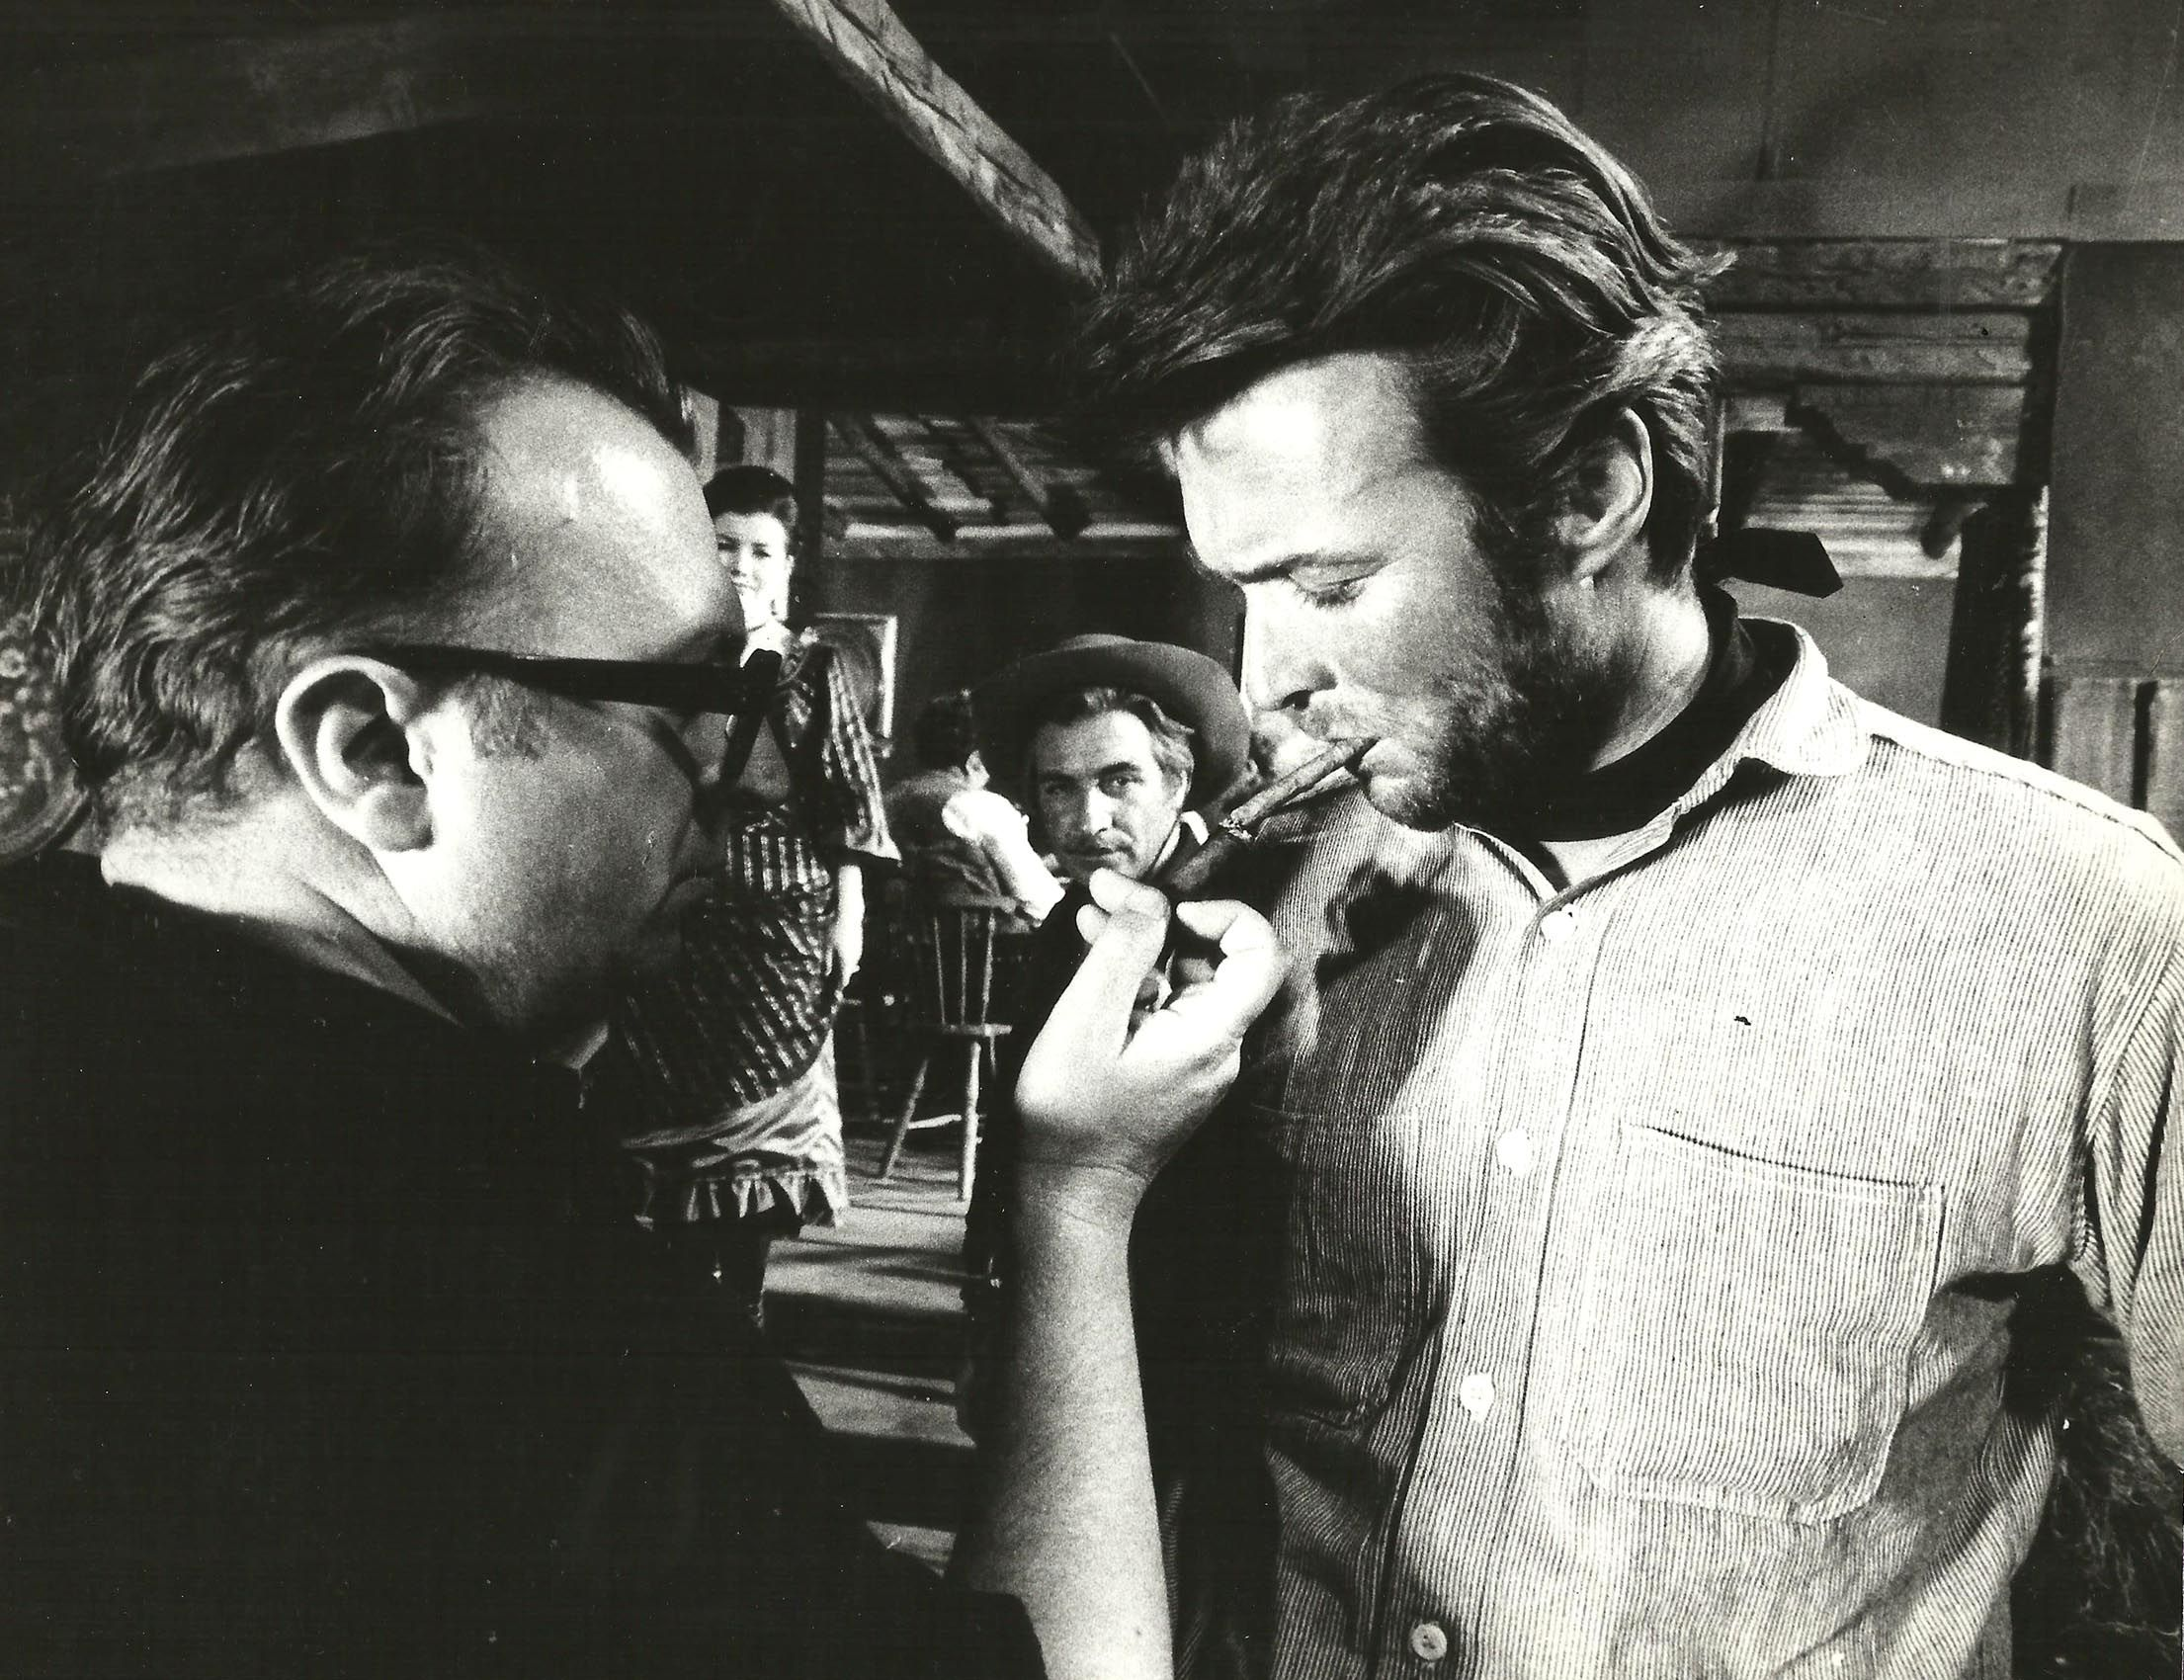 Director Sergio Leone Lights A Cigar For Clint Eastwood On The Set Of For A Few Dollars More 1965 Dollars Trilogy Clint Eastwood Clint